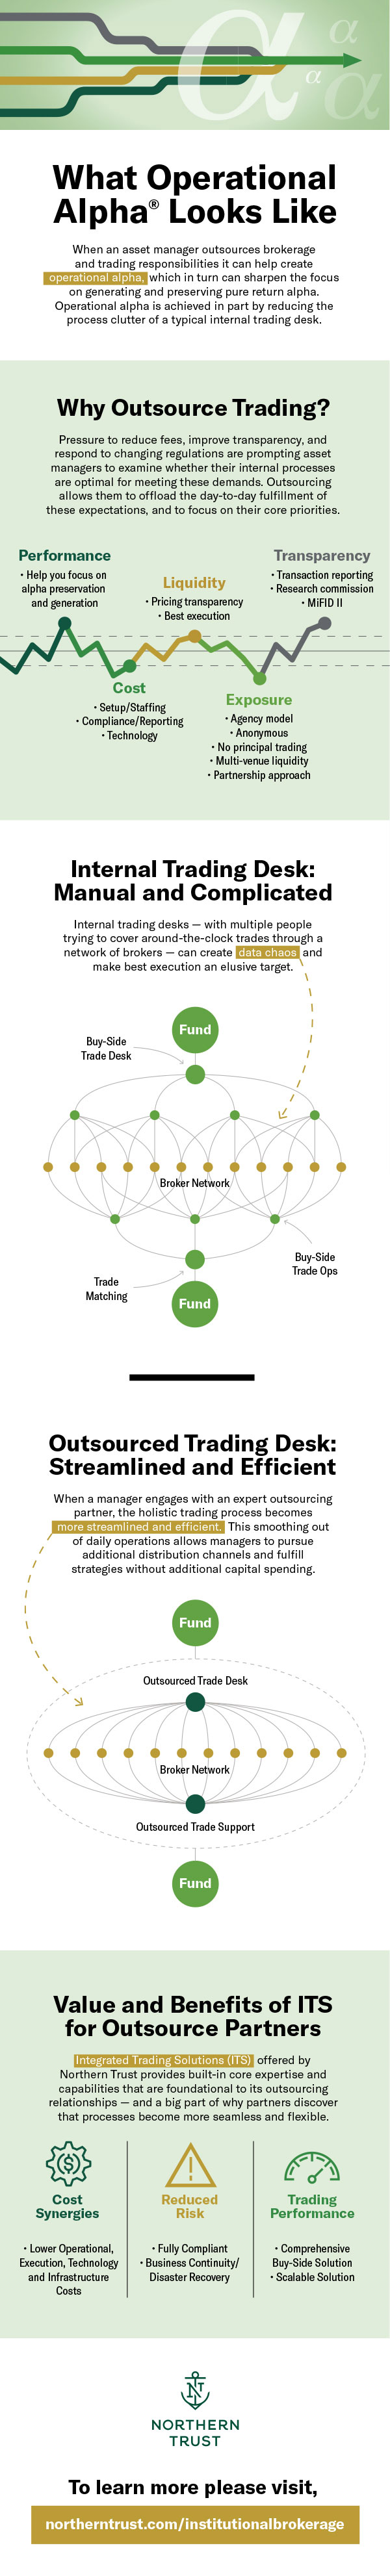 Preserving Alpha Through Outsourcing | Institutional Investor